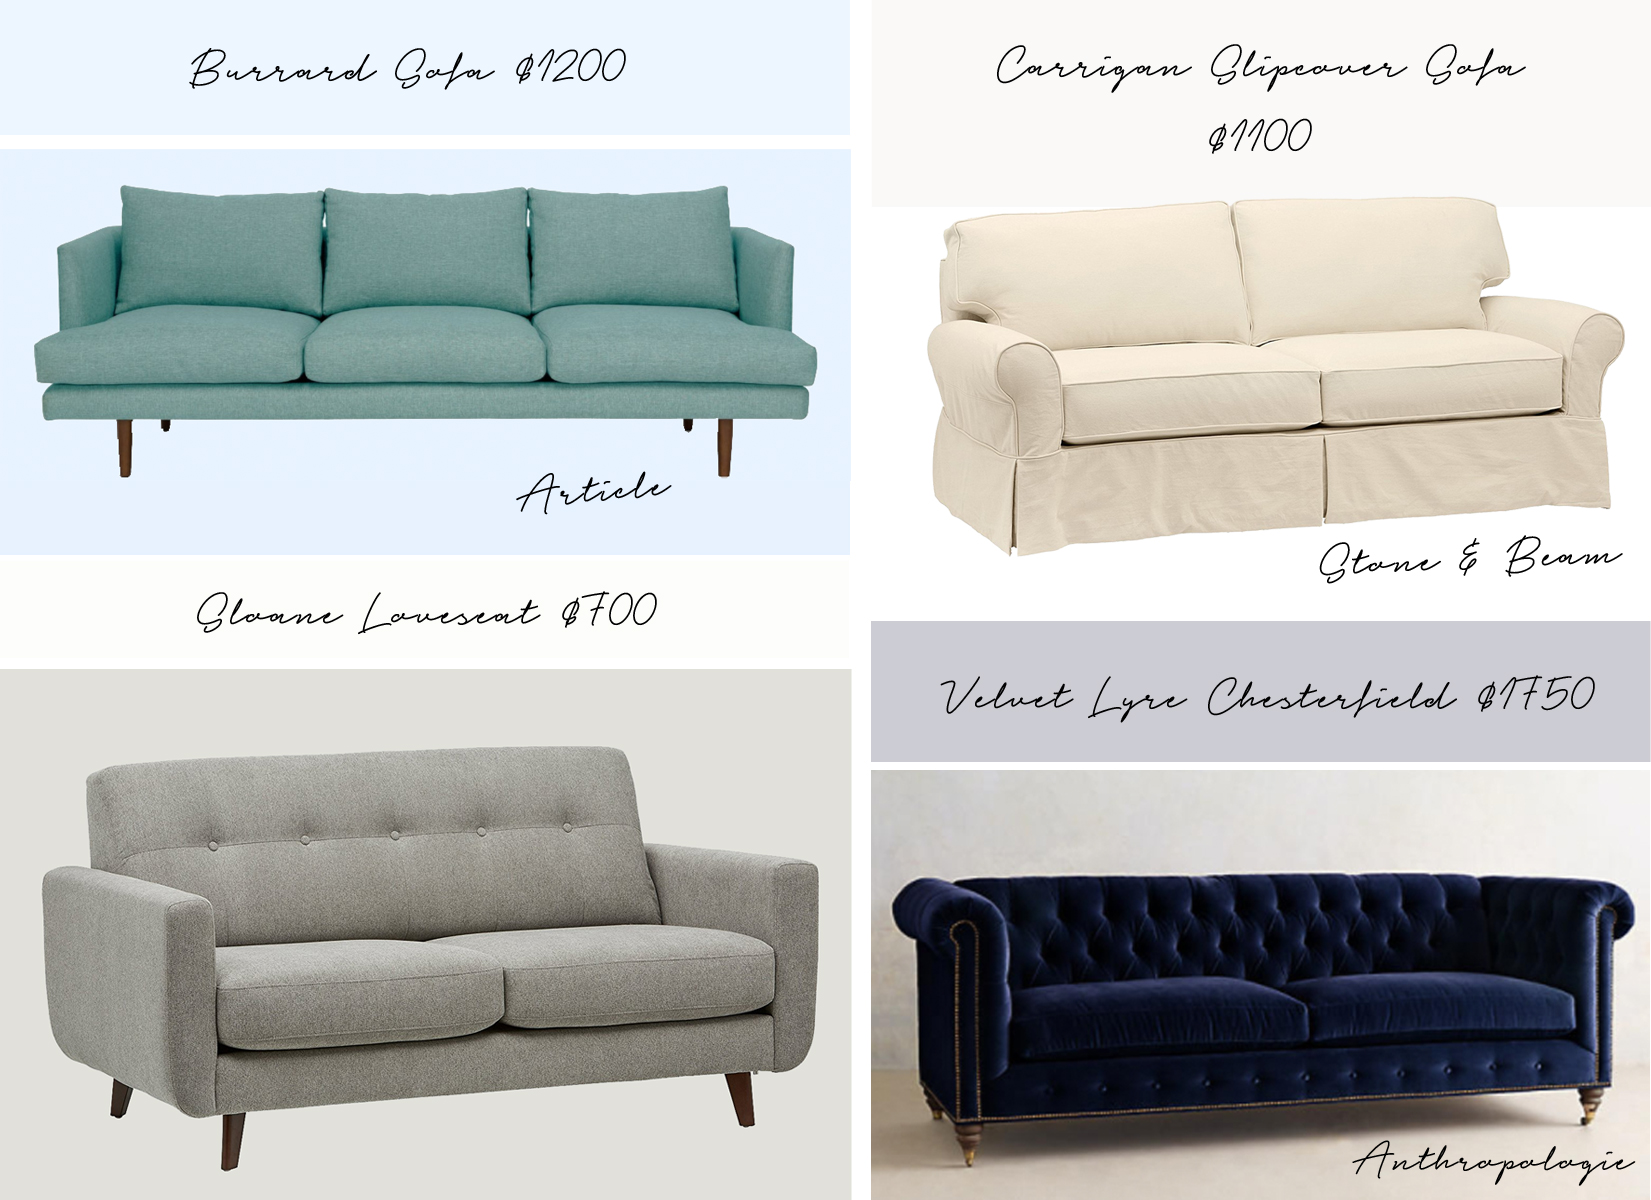 Sofa Usado Presidente Prudente Sofa De Canto Olx Sp Baci Living Room